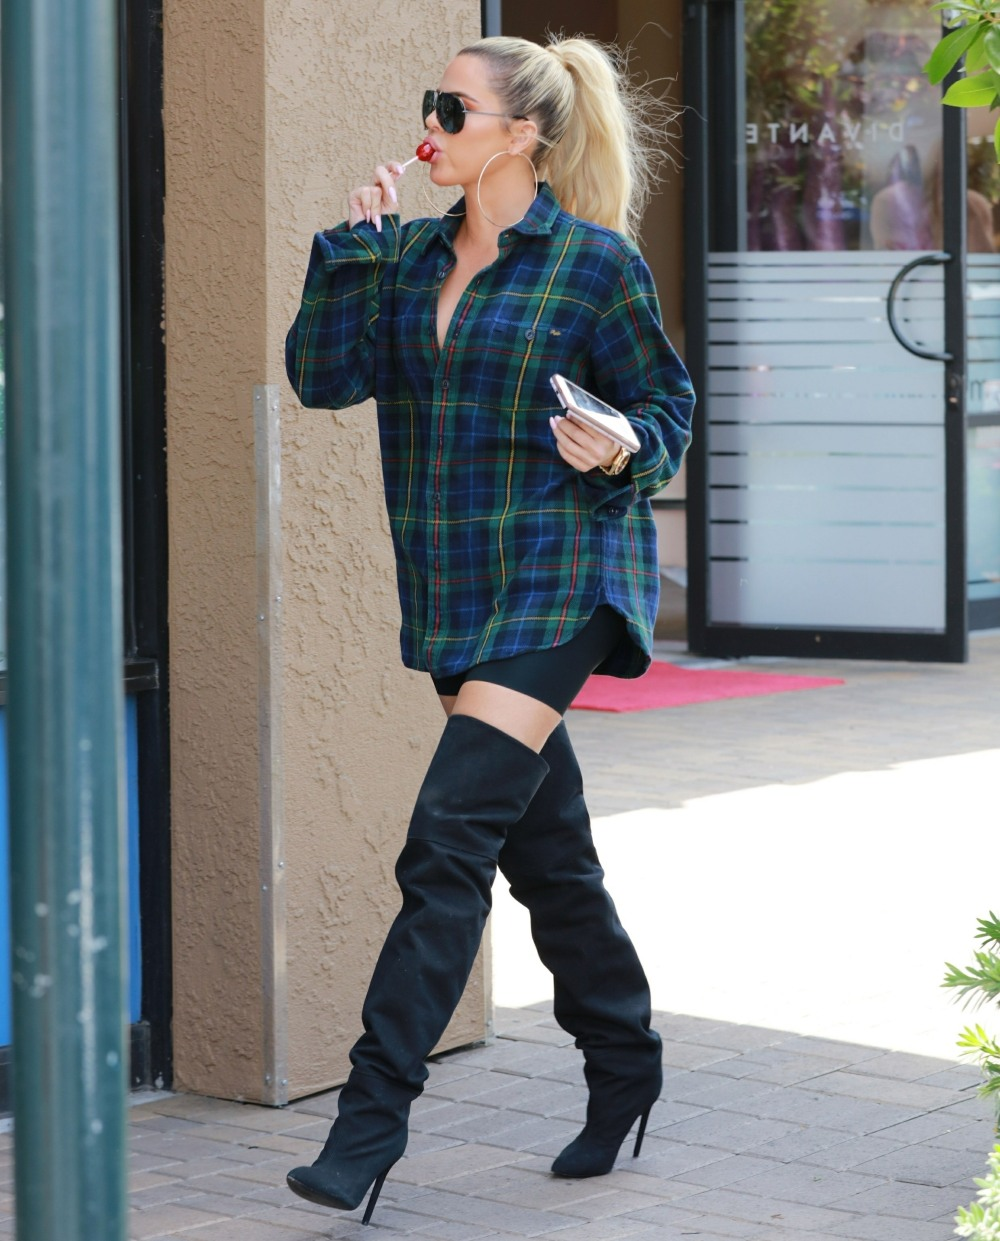 Khloe Kardashian and Scott Disick film at Maxwell Dogs store